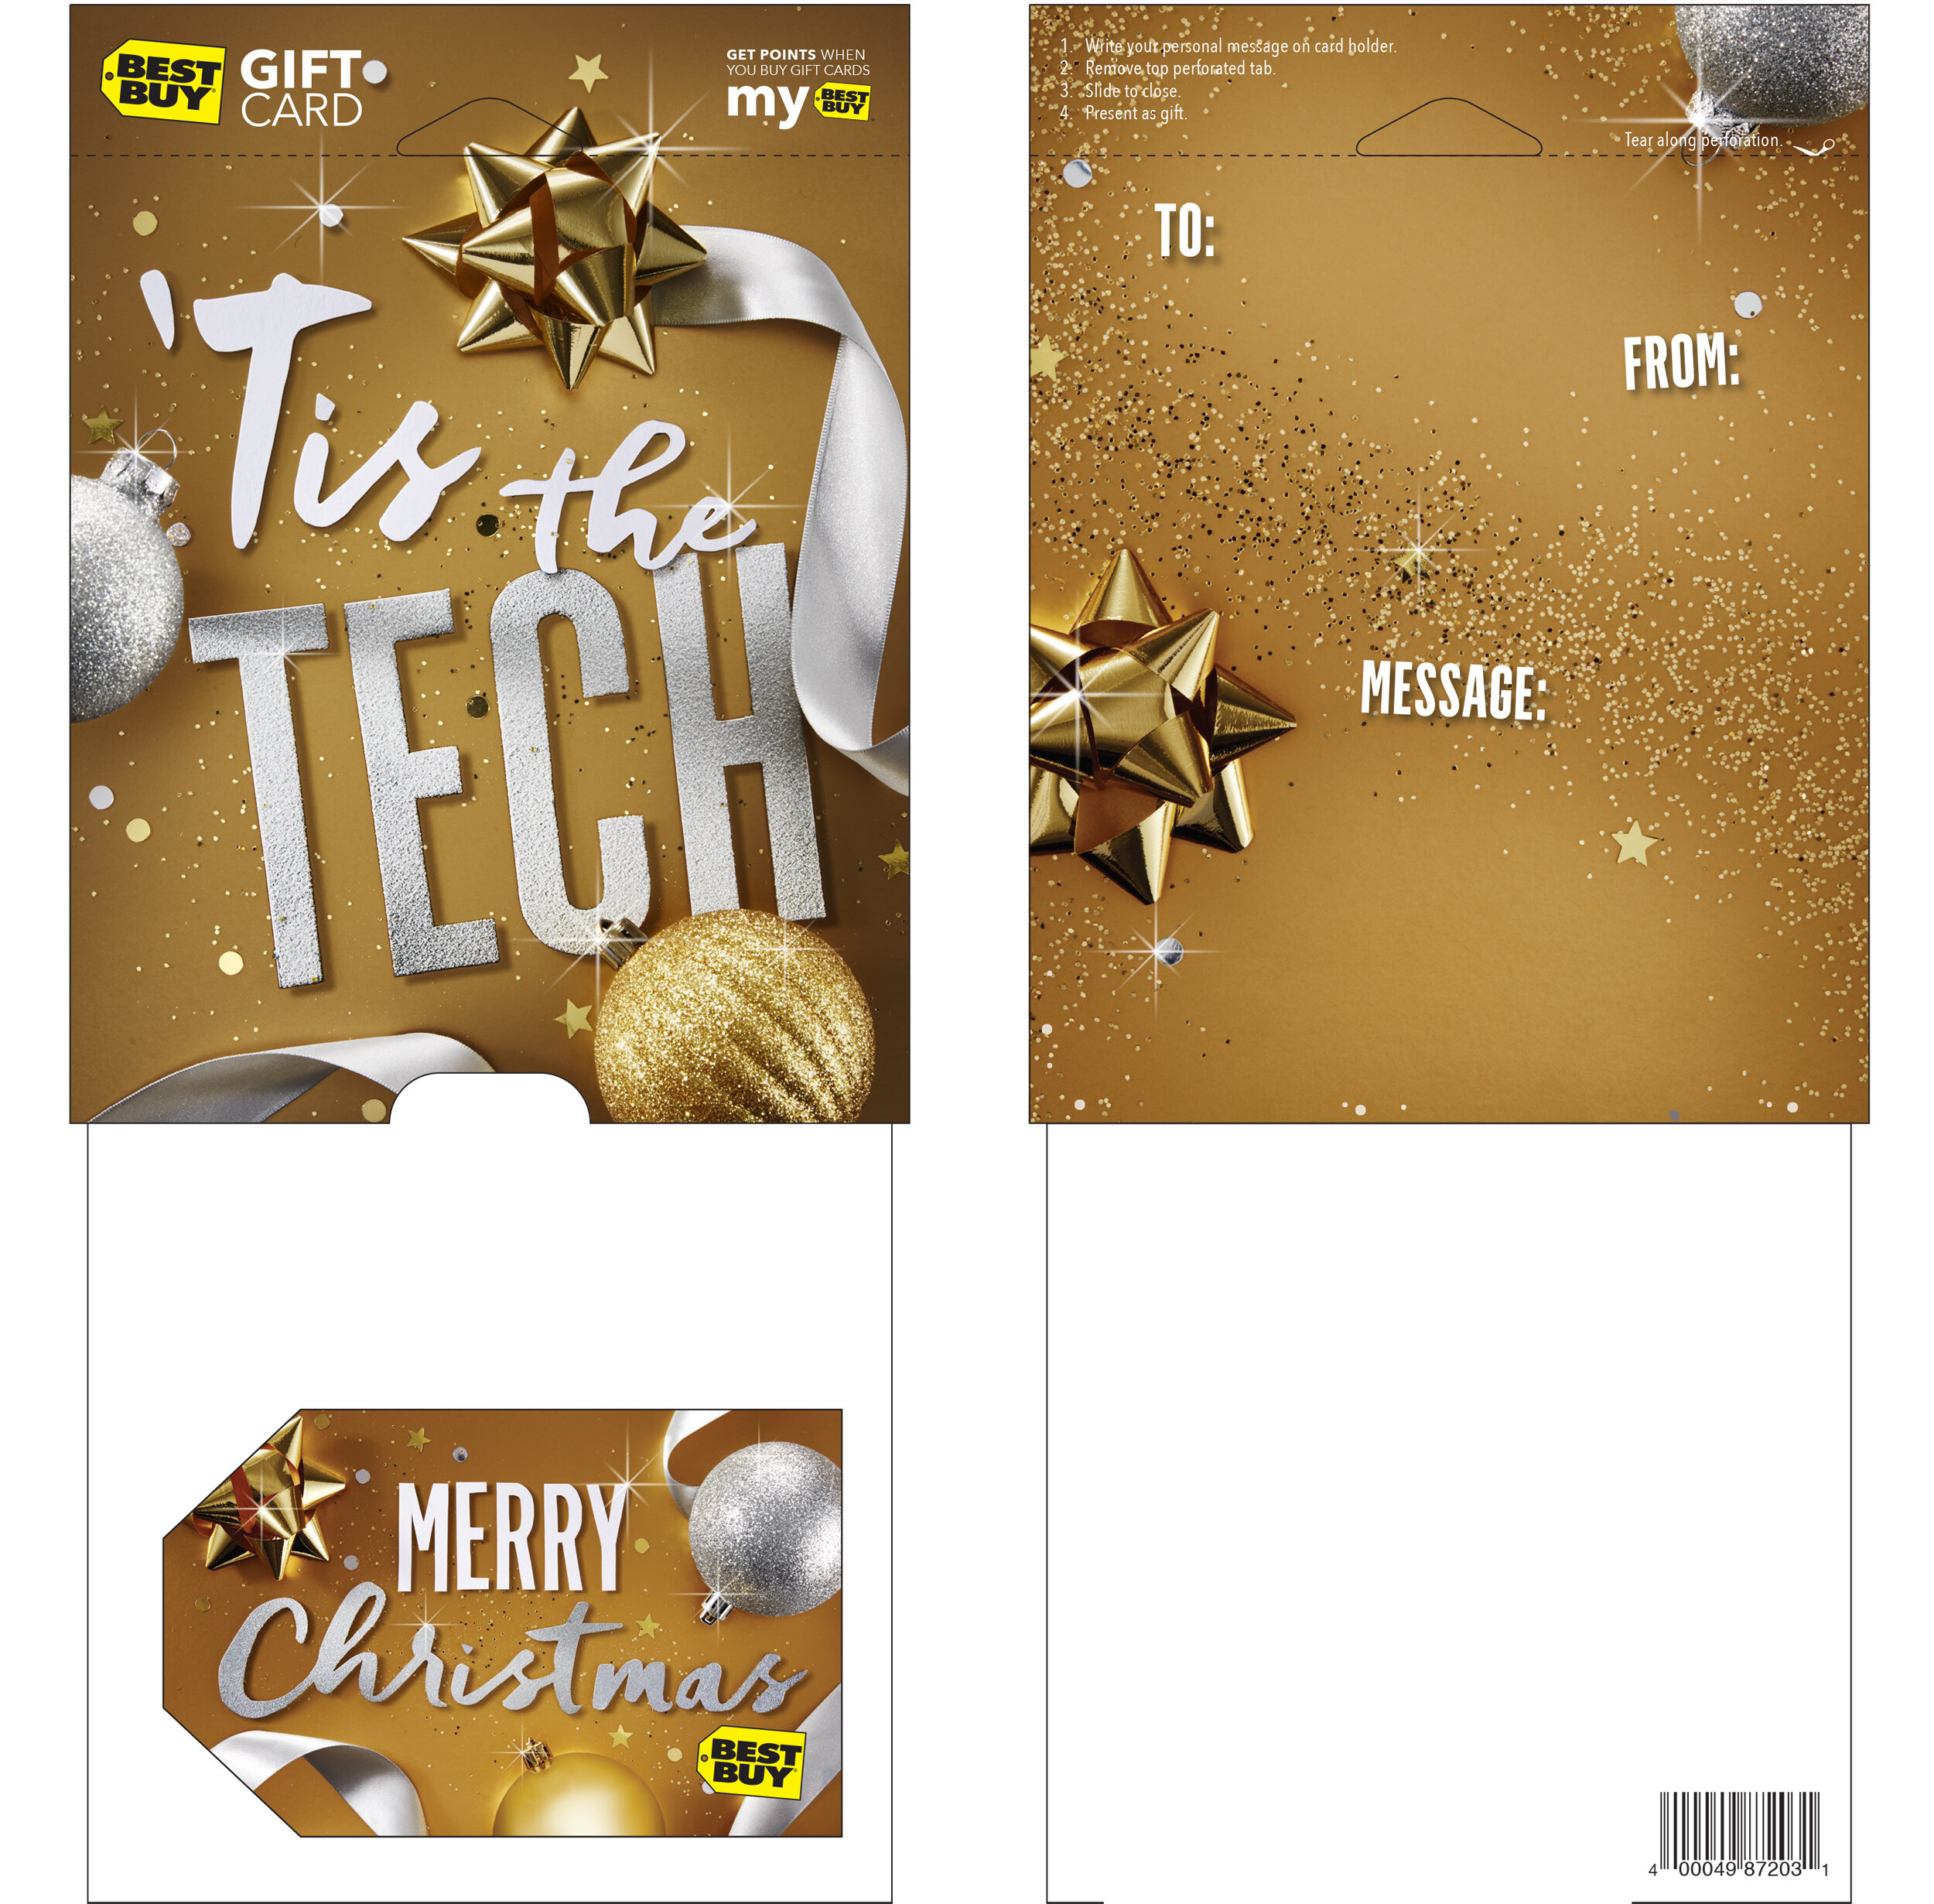 36752_BBY_GIFT_CARDS_WAVE_05_HOLIDAY_RD02-22.jpg